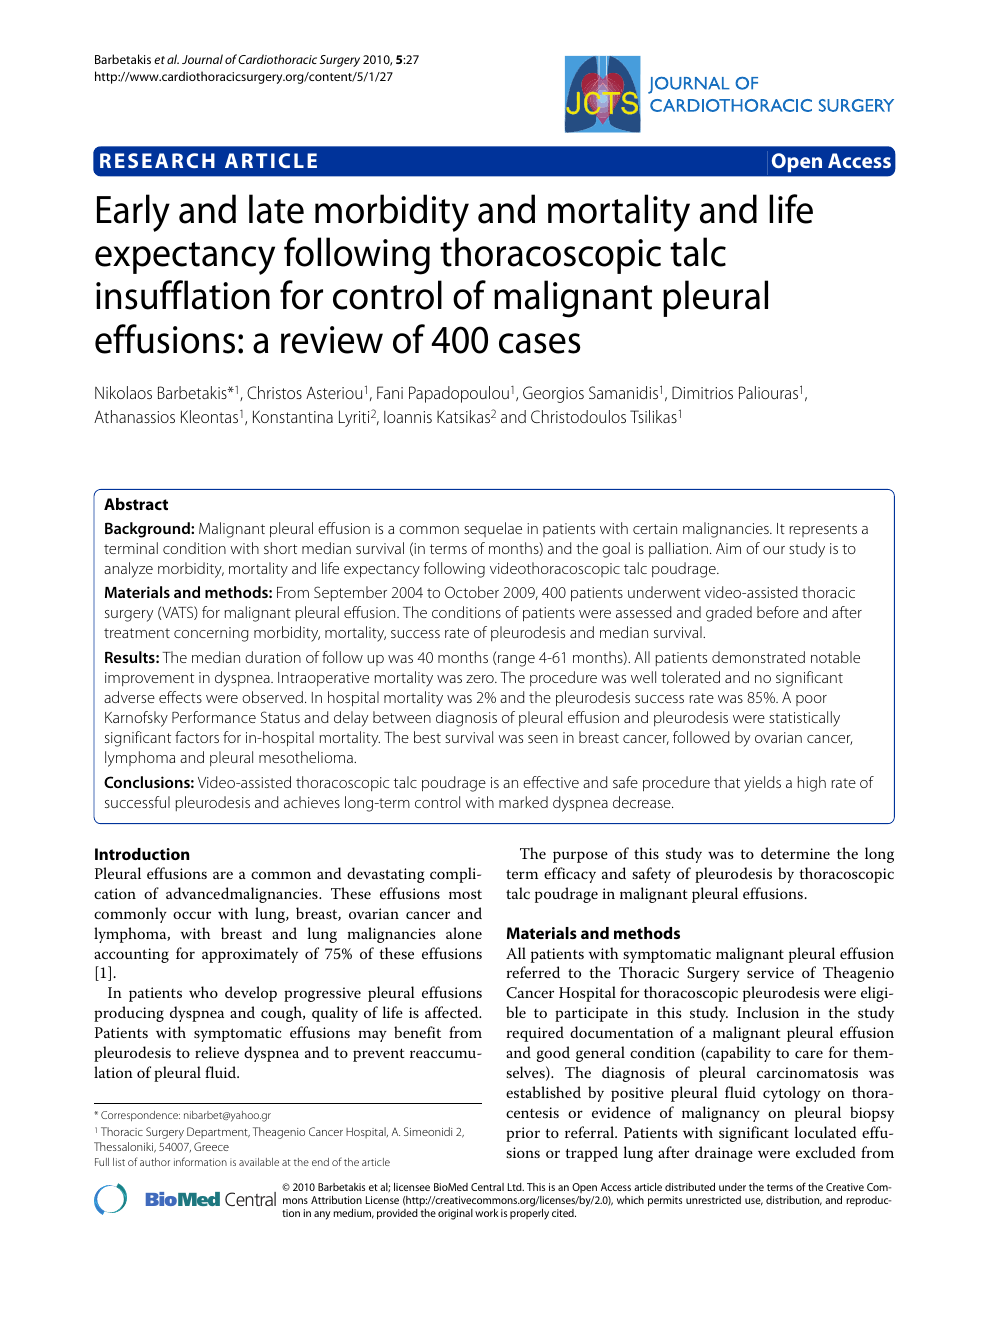 Early And Late Morbidity And Mortality And Life Expectancy Following Thoracoscopic Talc Insufflation For Control Of Malignant Pleural Effusions A Review Of 400 Cases Topic Of Research Paper In Clinical Medicine